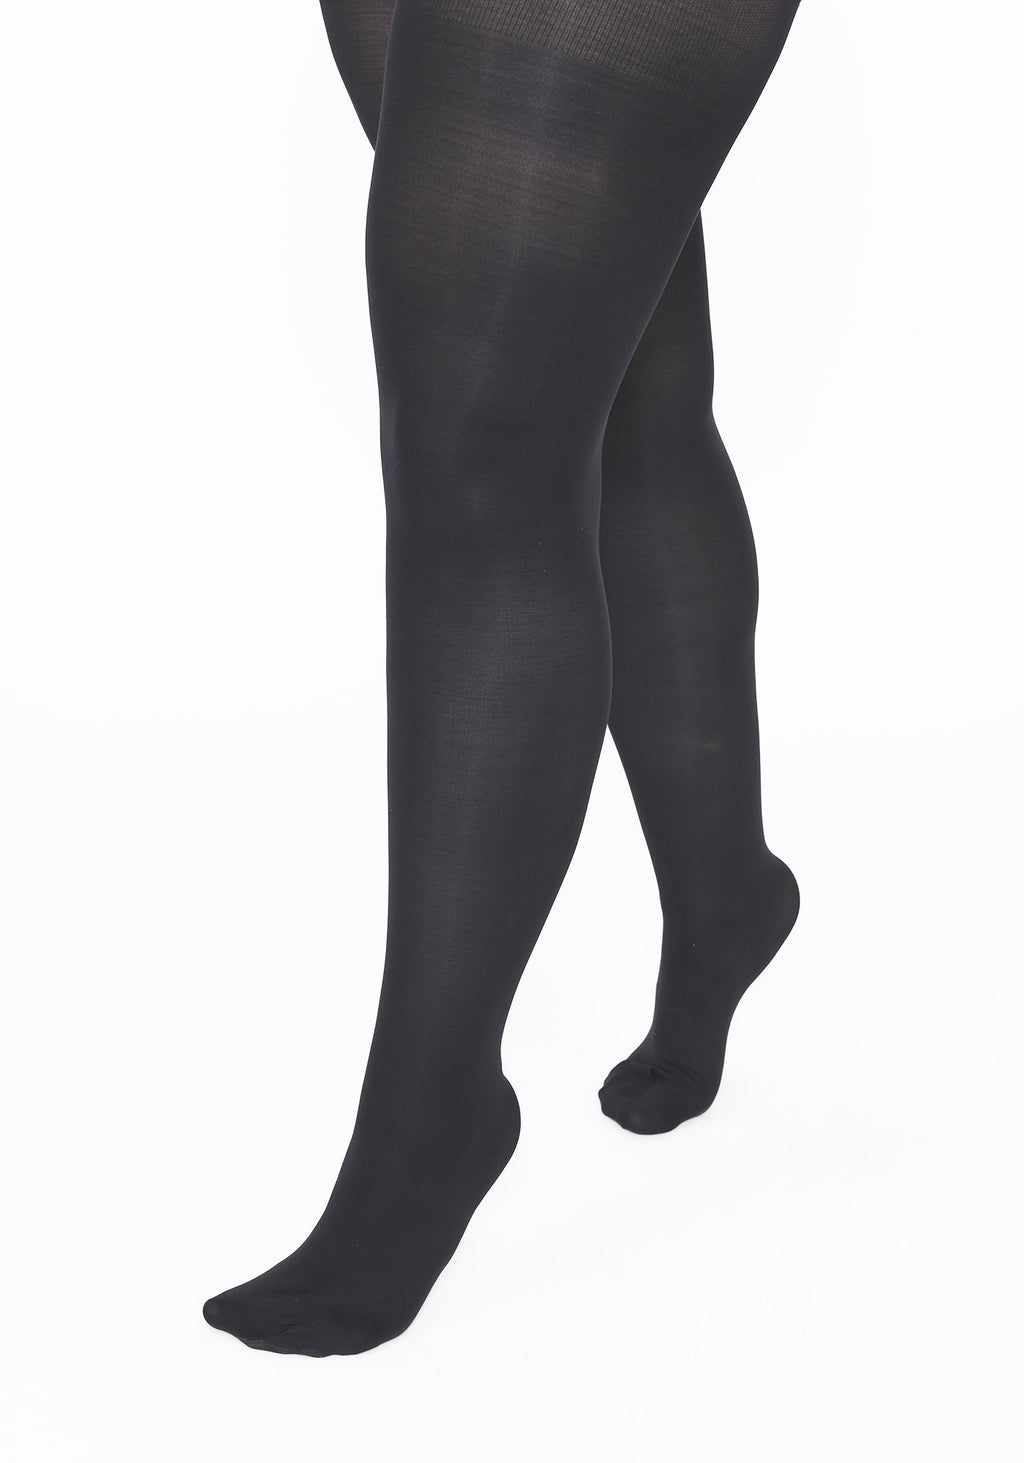 Plus Size Black 40 Denier Tights